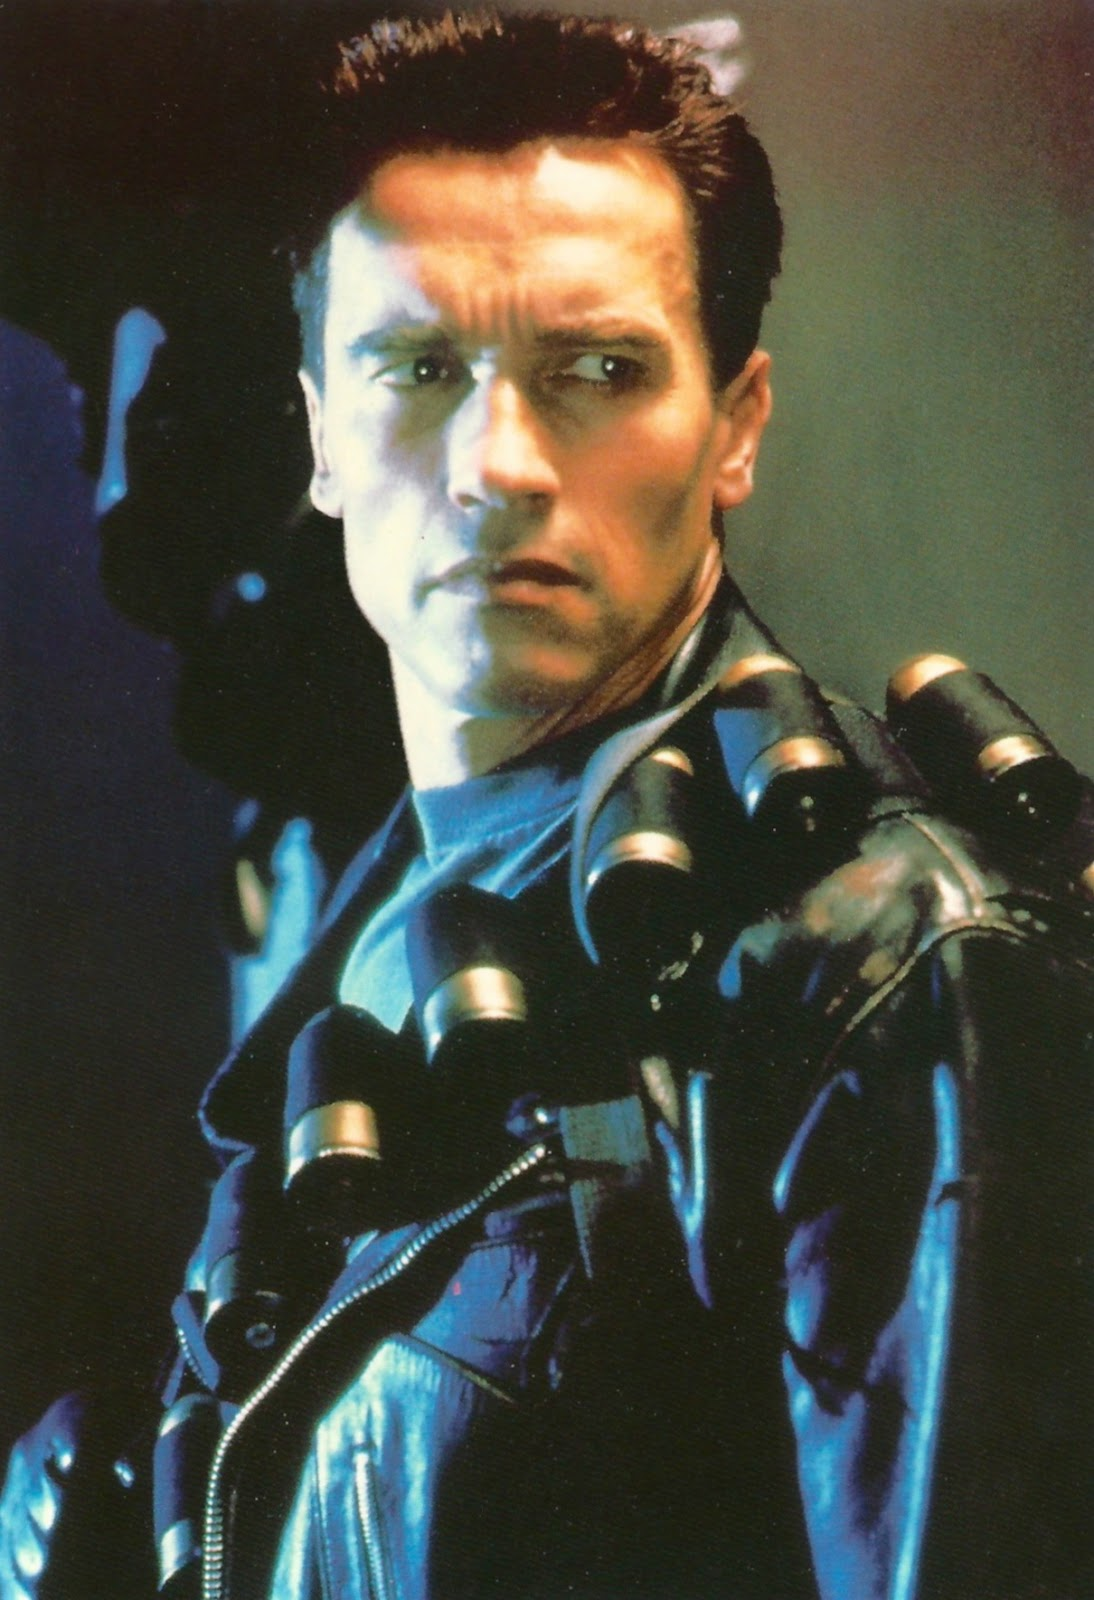 My favorite movies and stars terminator 2 with arnold schwarzenegger terminator 2 with arnold schwarzenegger altavistaventures Gallery